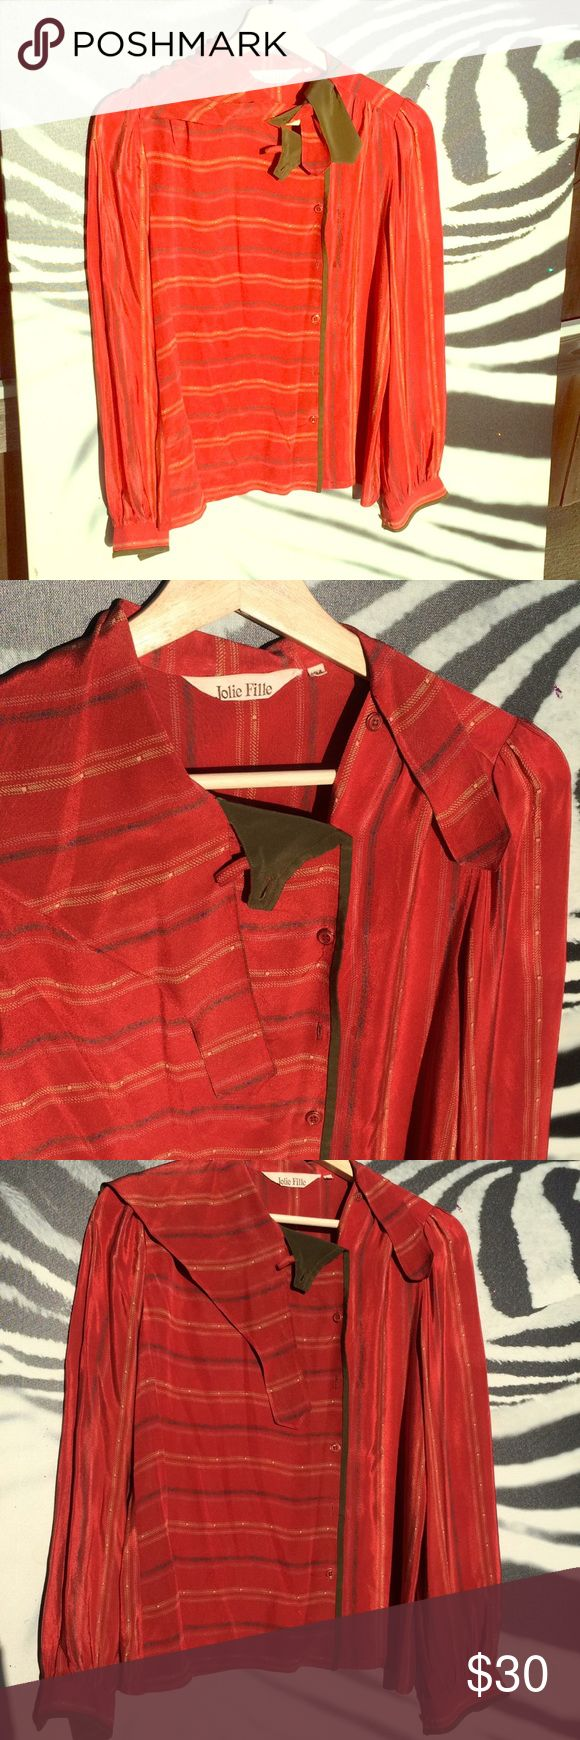 Oui! 💋70s French silk shirt 💋 Foreign exchange student in the 70s HOT!!! Adorable vintage blouse  Tags Brigette Bardot, French pop, sweet seductress, pinup Jolie Fille Tops Blouses